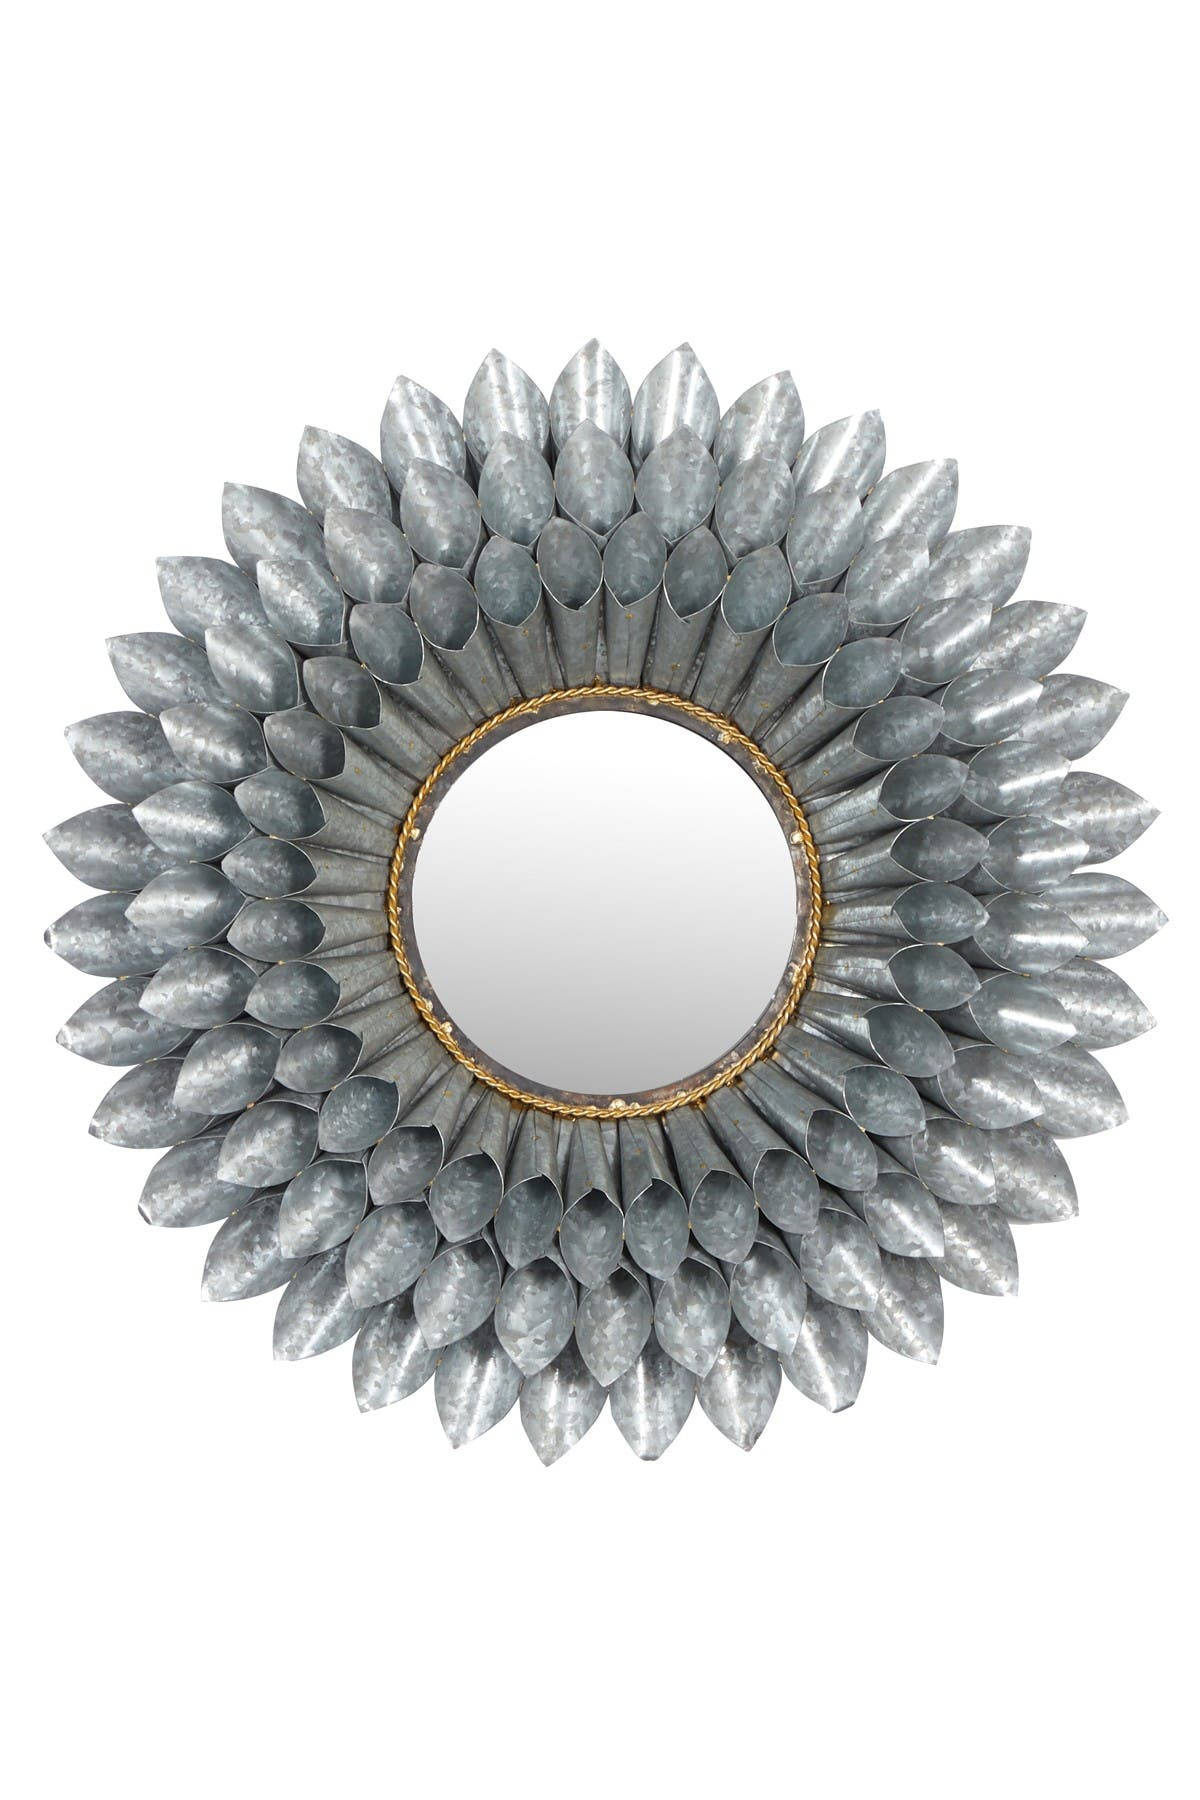 Willow Row Large Round 3d Silver Metal Floral Accent Mirror 32 Nordstrom Rack